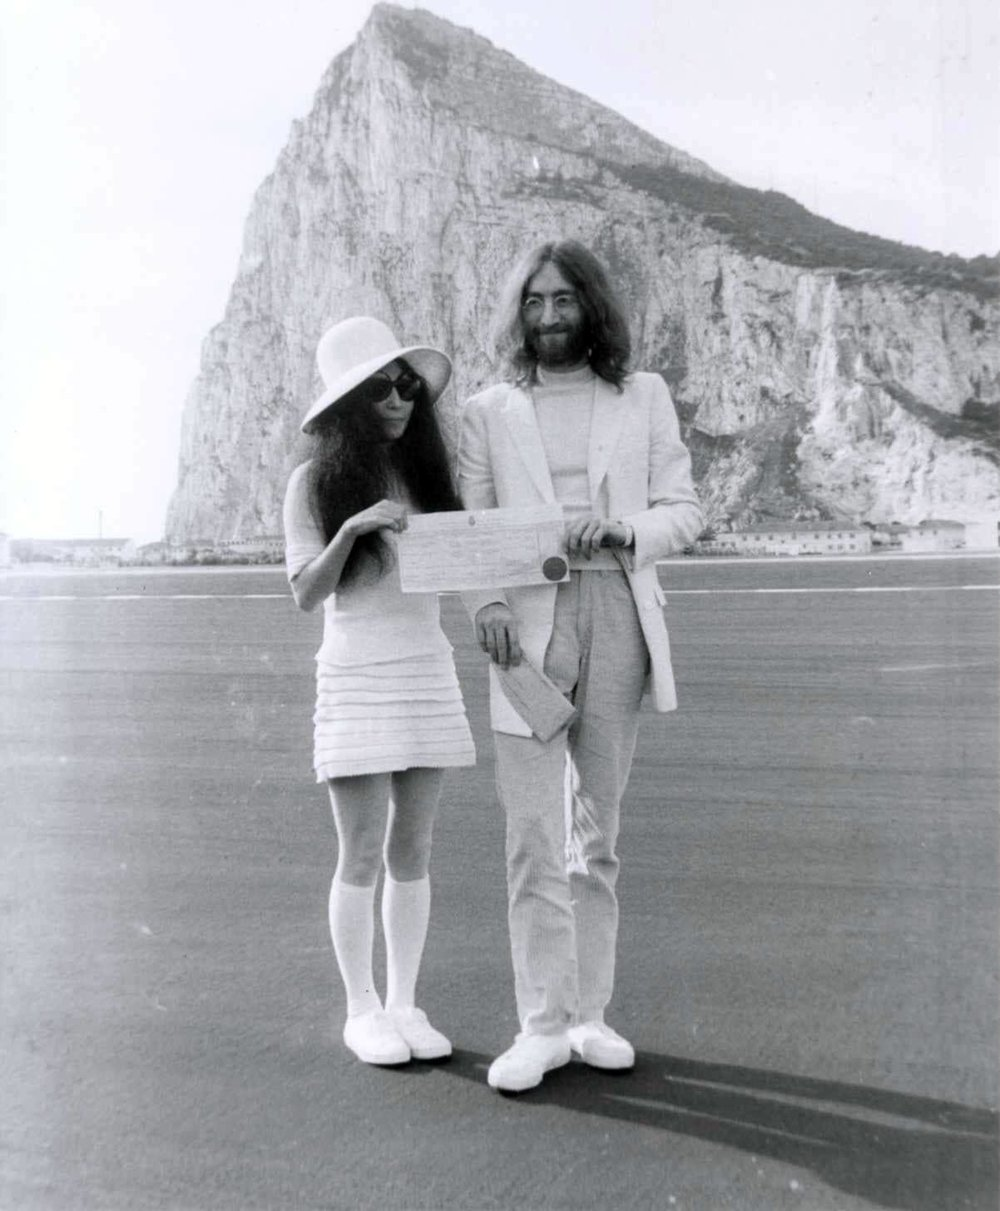 John Lennon and Yoko Ono, March 20th 1969.